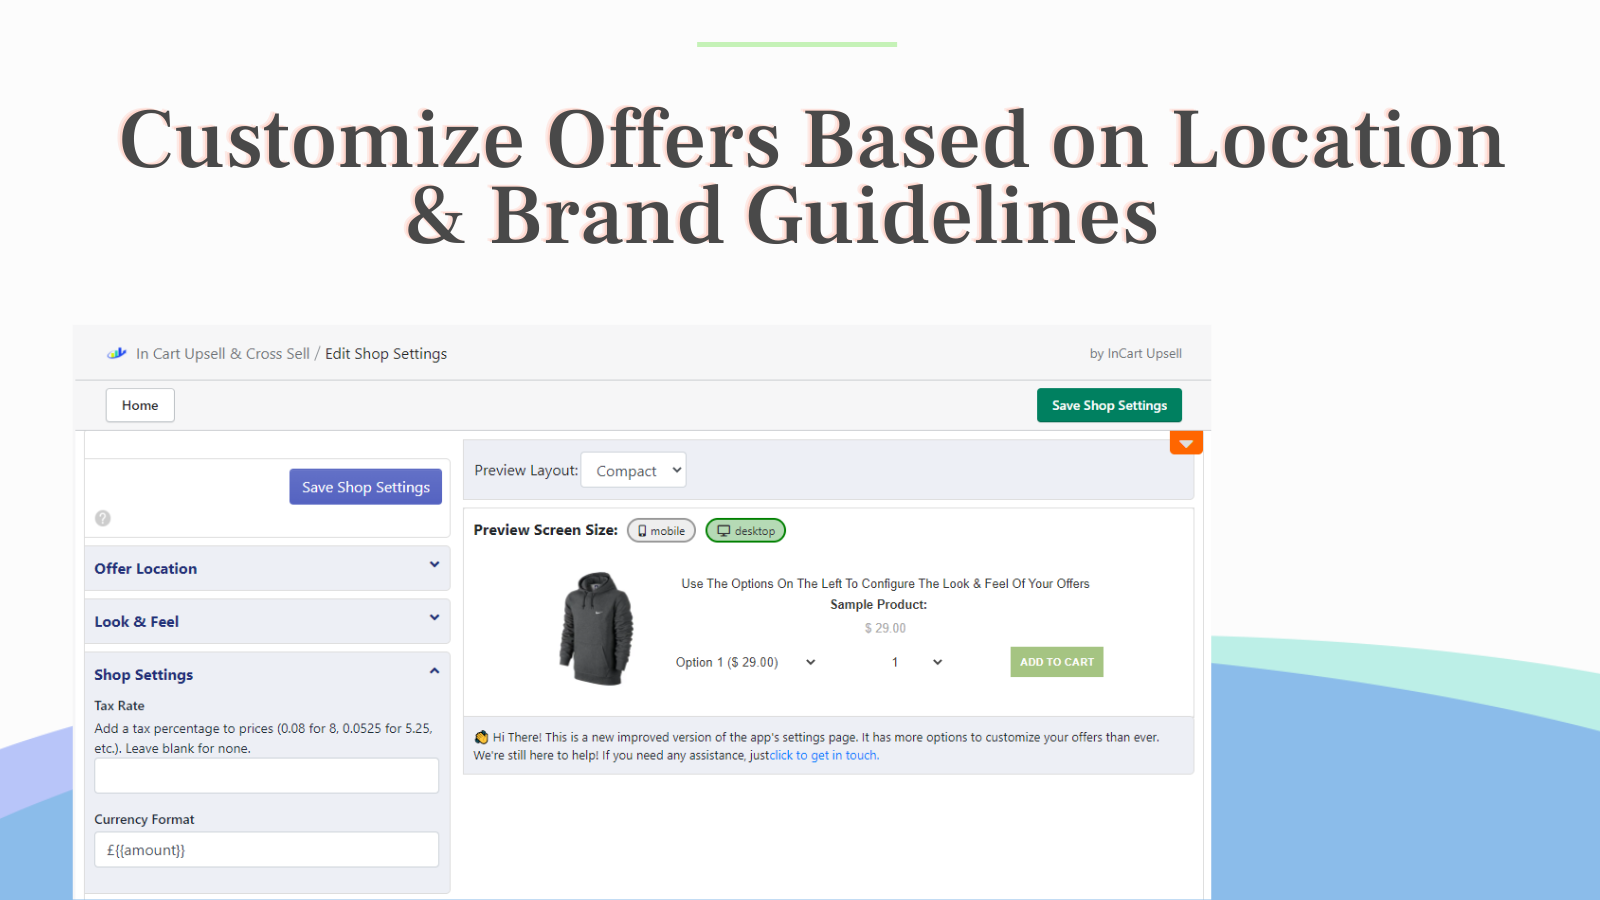 Customize offers based on location + match your brand guide